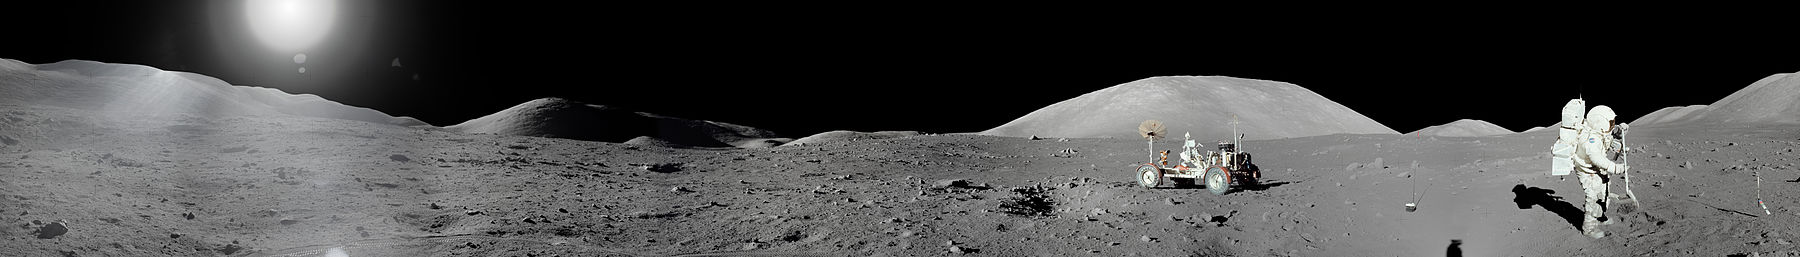 Apollo 17 Moon Panorama